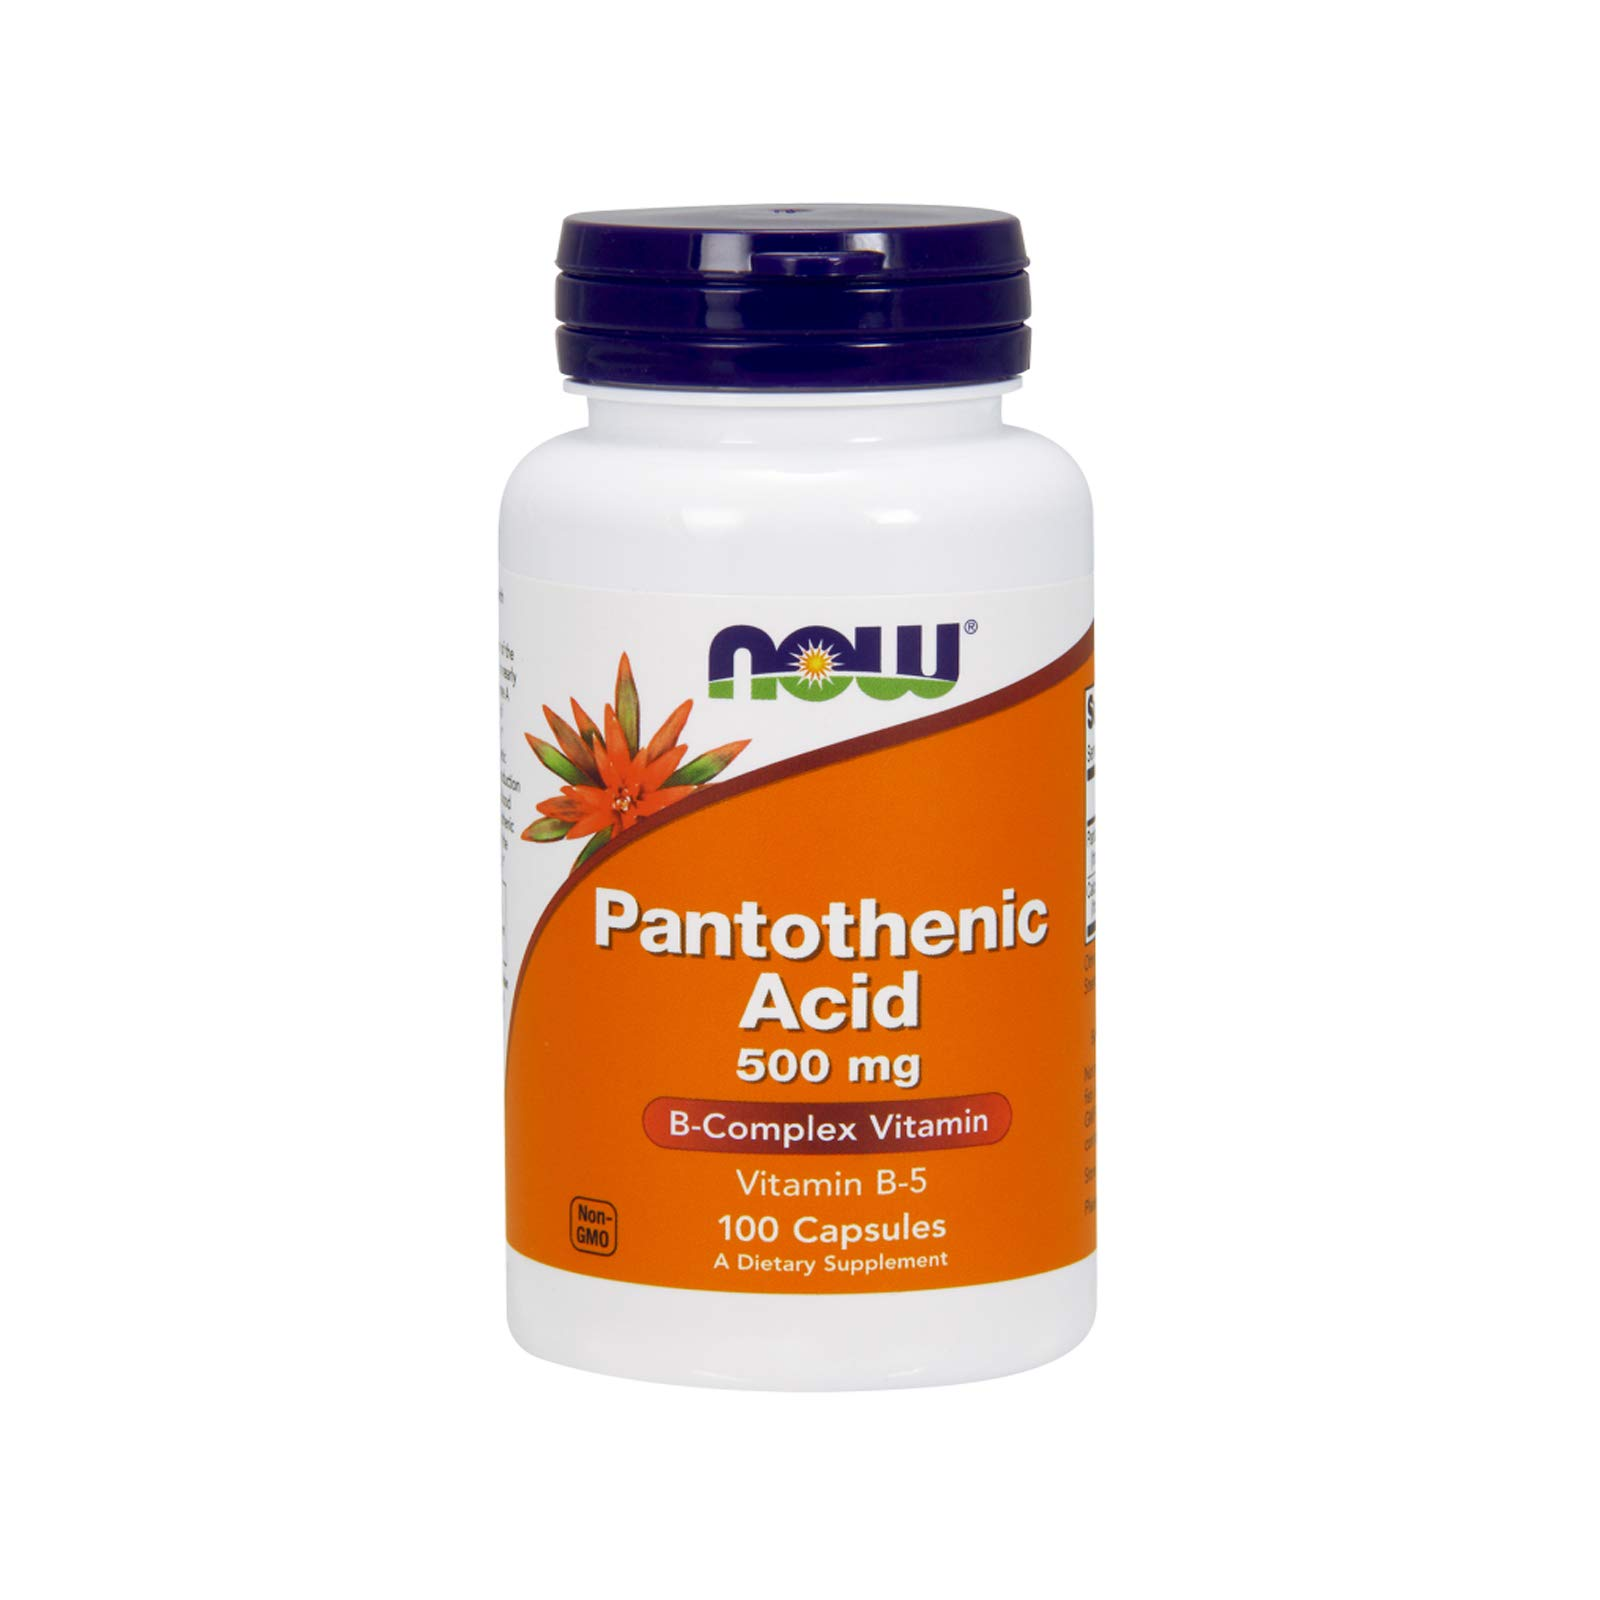 NOW Pantothenic Acid 500mg, 100 Capsules (Pack of 2) by NOW Foods